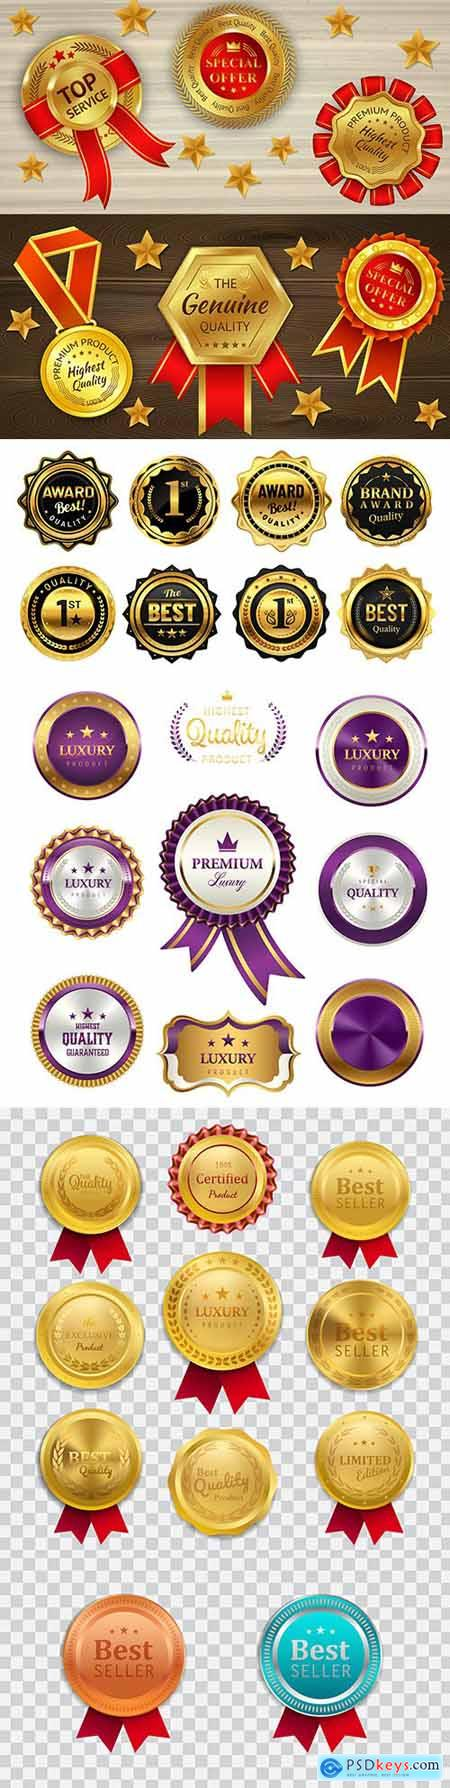 Luxury premium gold badges and labels collection 10